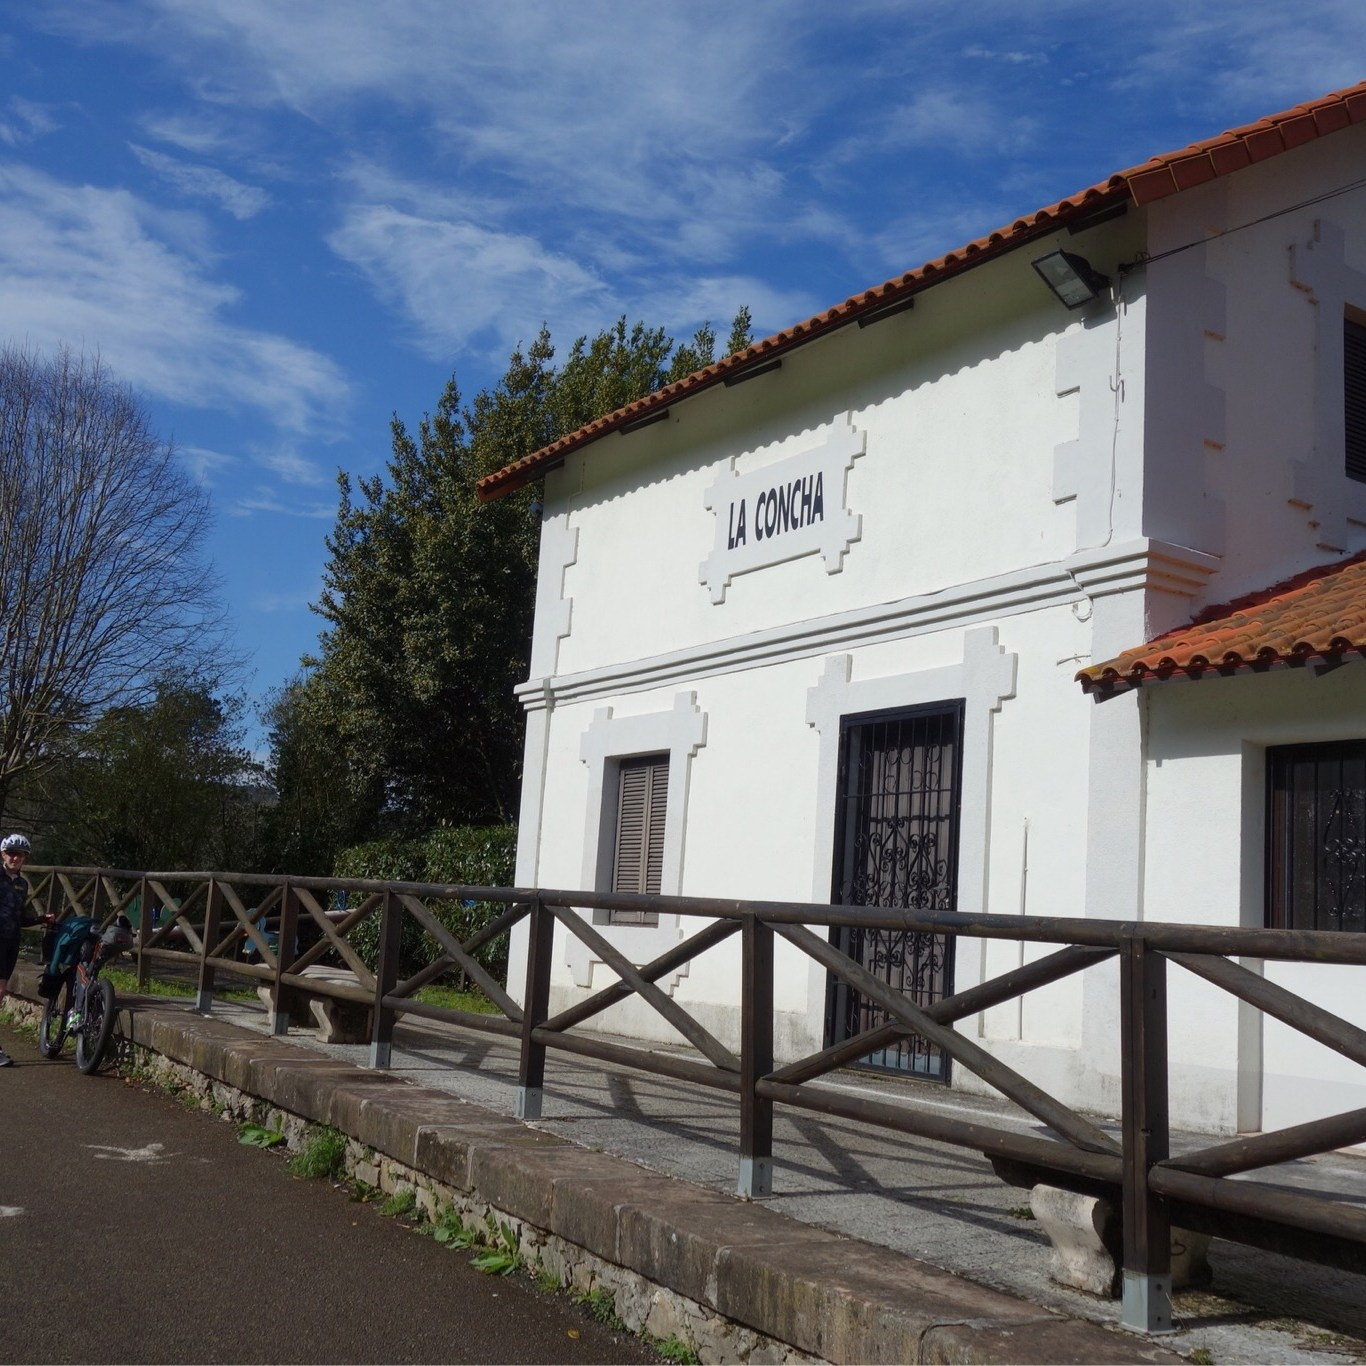 An old train station on a via verde in spain